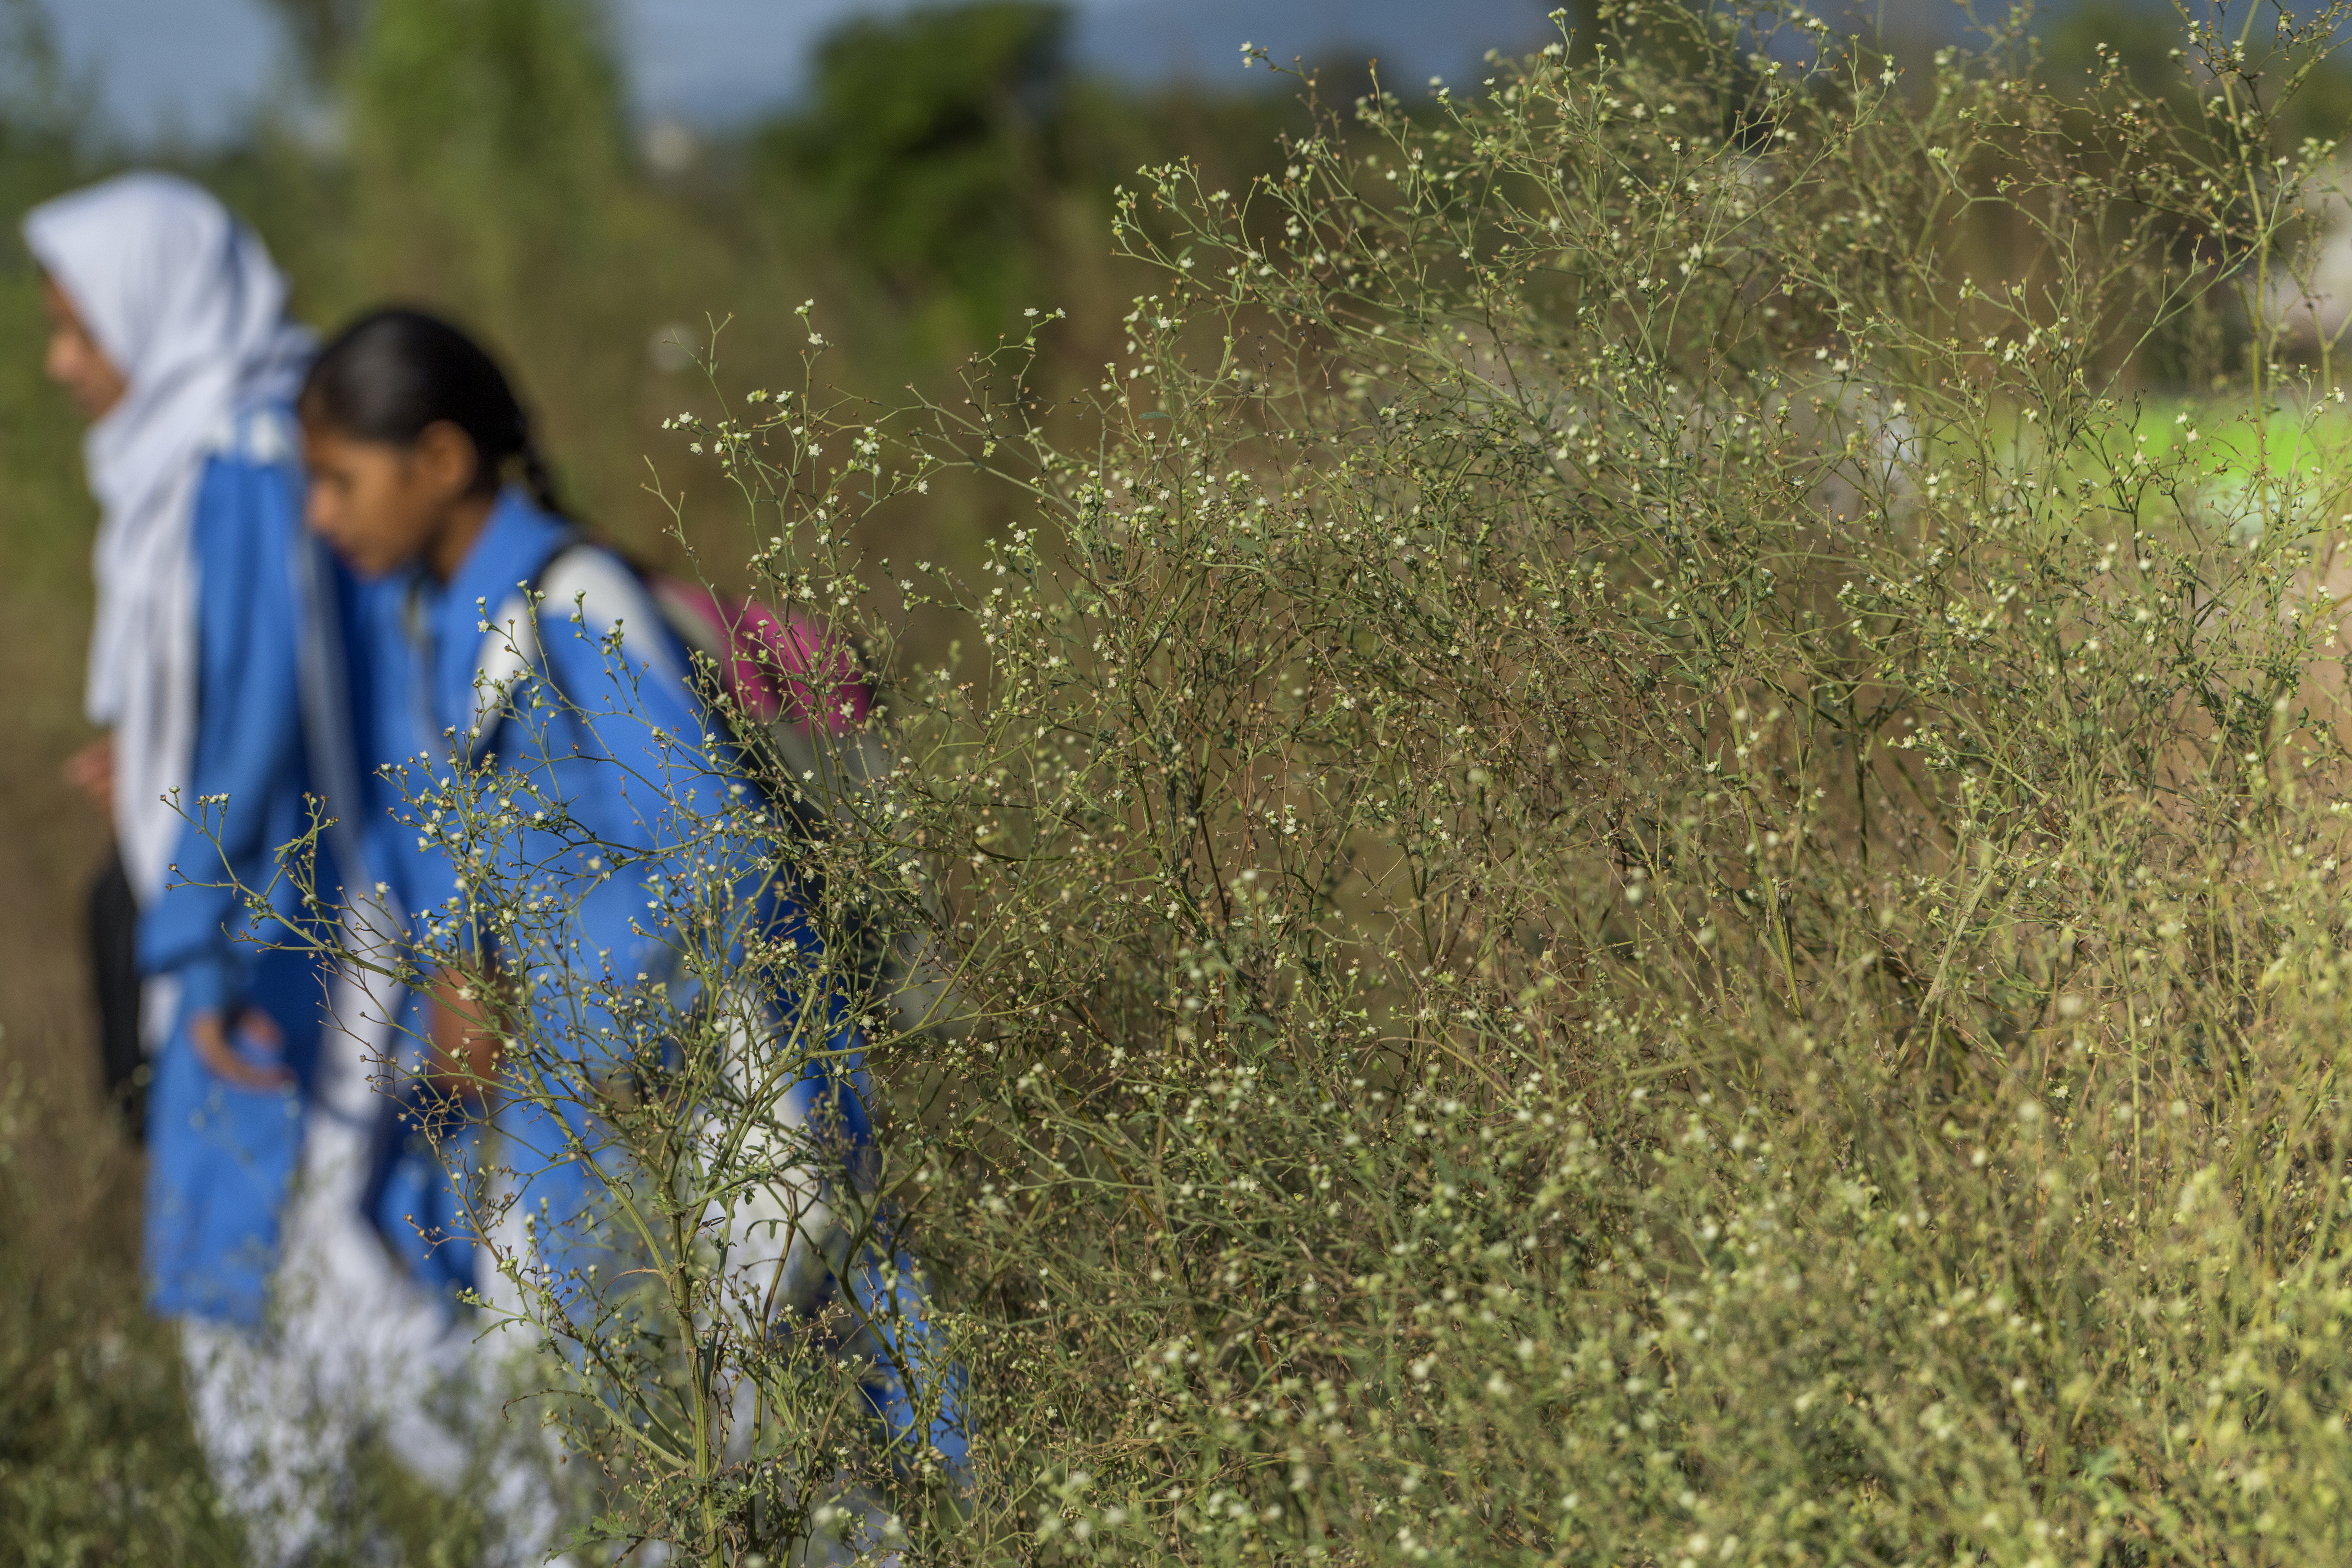 thicket of parthenium weeds cover view of two school girls in Pakistan